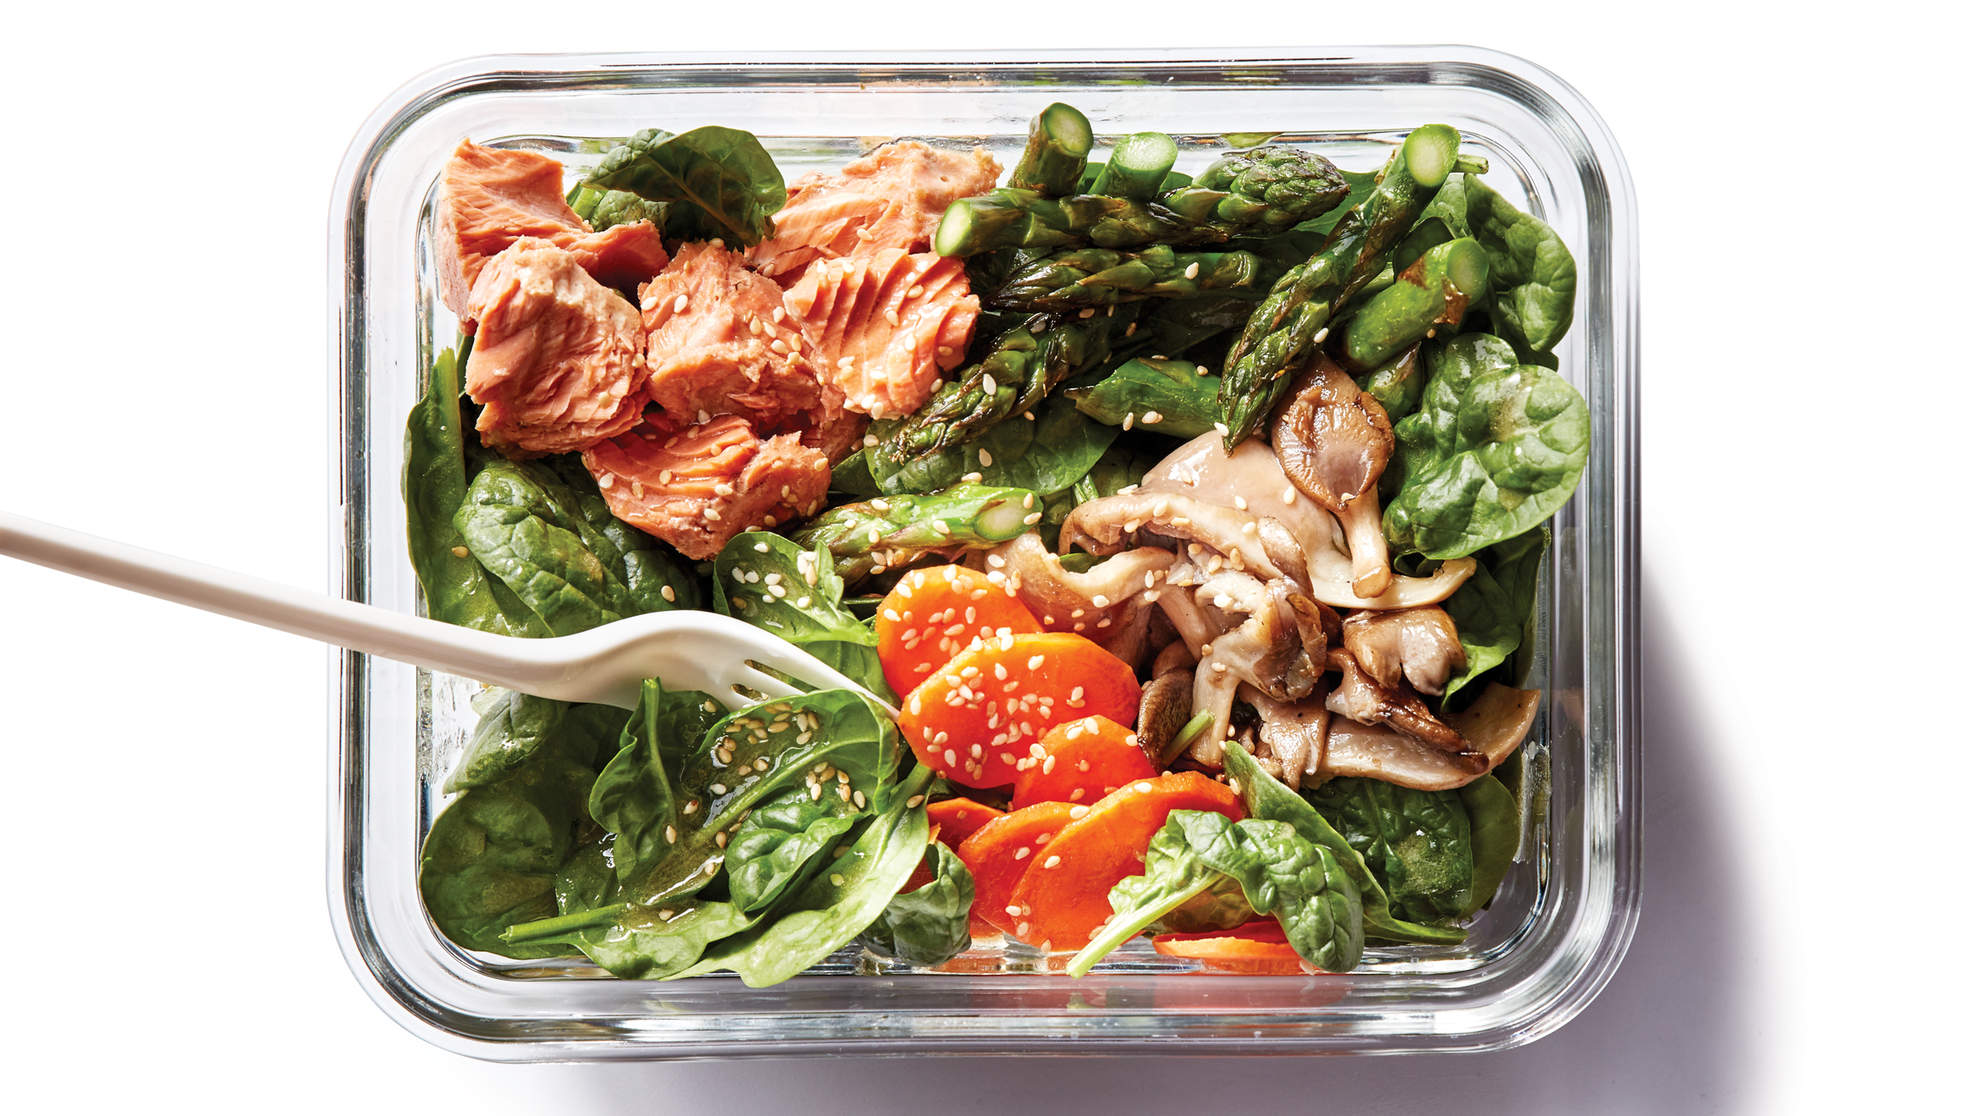 Spinach-Salmon Salad